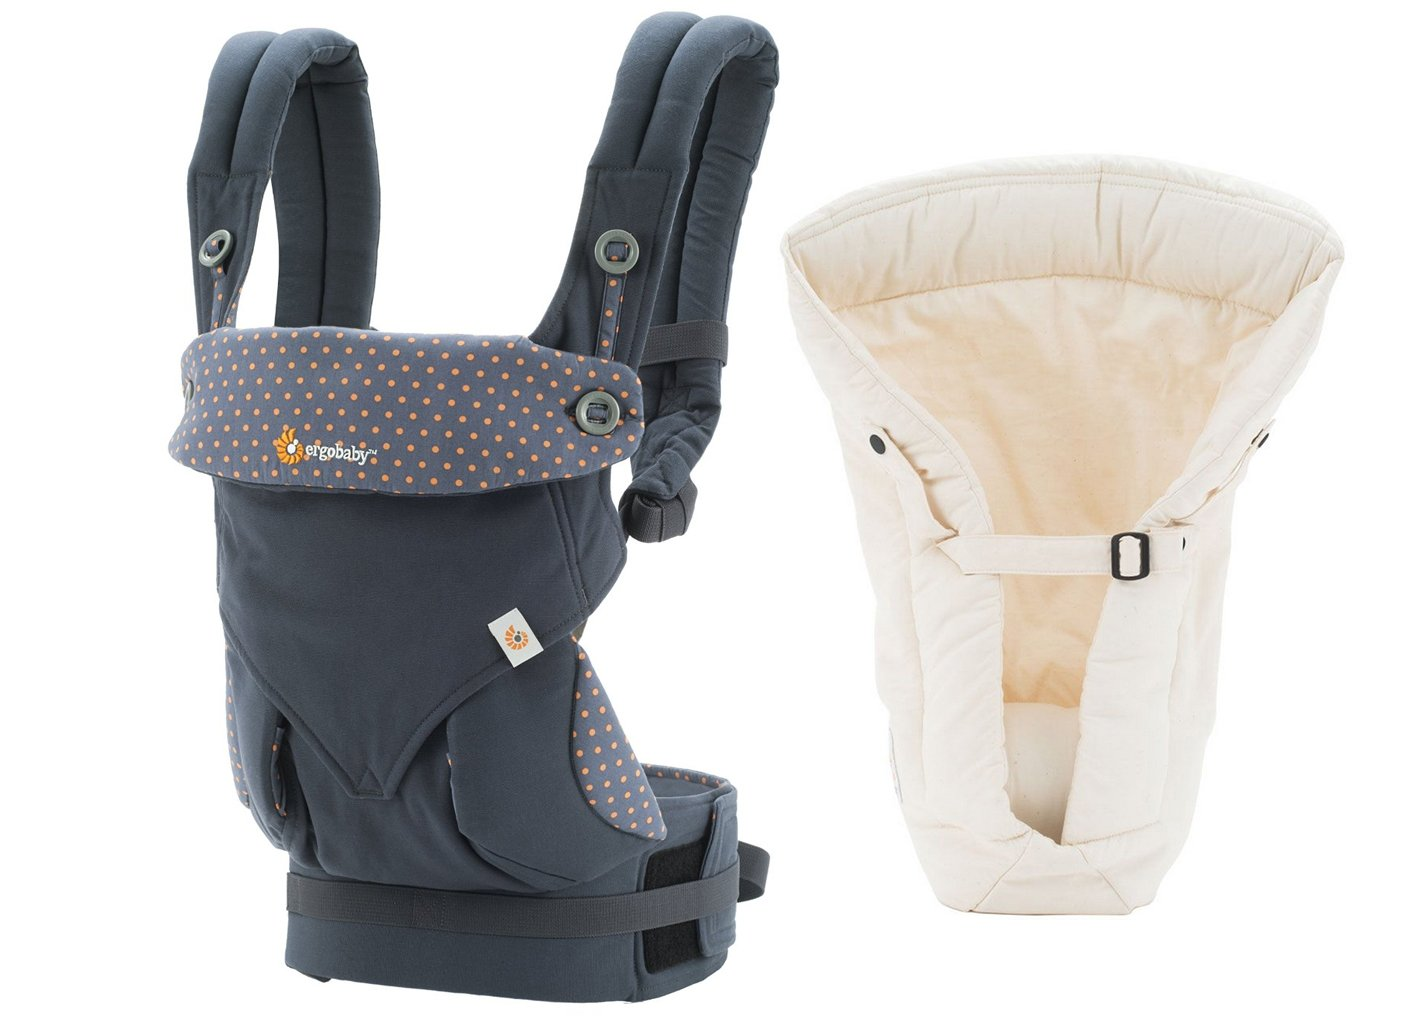 Ergobaby Bundle - 2 Items: 360 Dusty Blue Baby Carrier and Original Natural Infant Insert